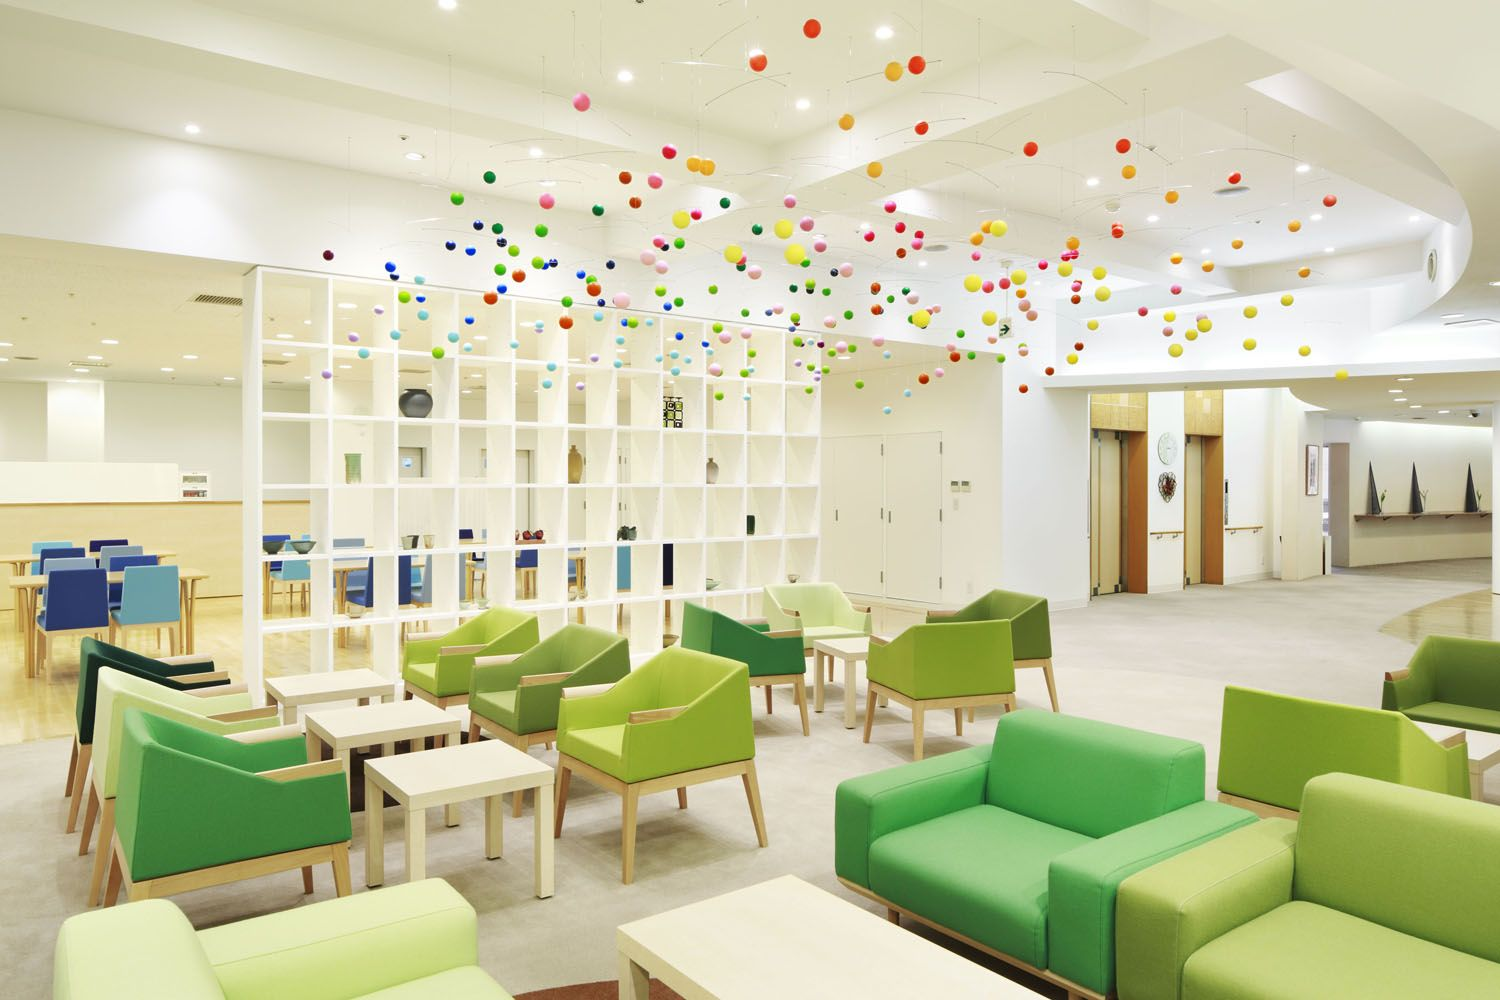 2_emmanuelle_moureaux_shinjuen.jpg - In the lounge area, colorful bubbles are dancing in the air above chairs and sofas colored in shades of green, which give image of green grass and soap bubbles floating in the park on sunny days.